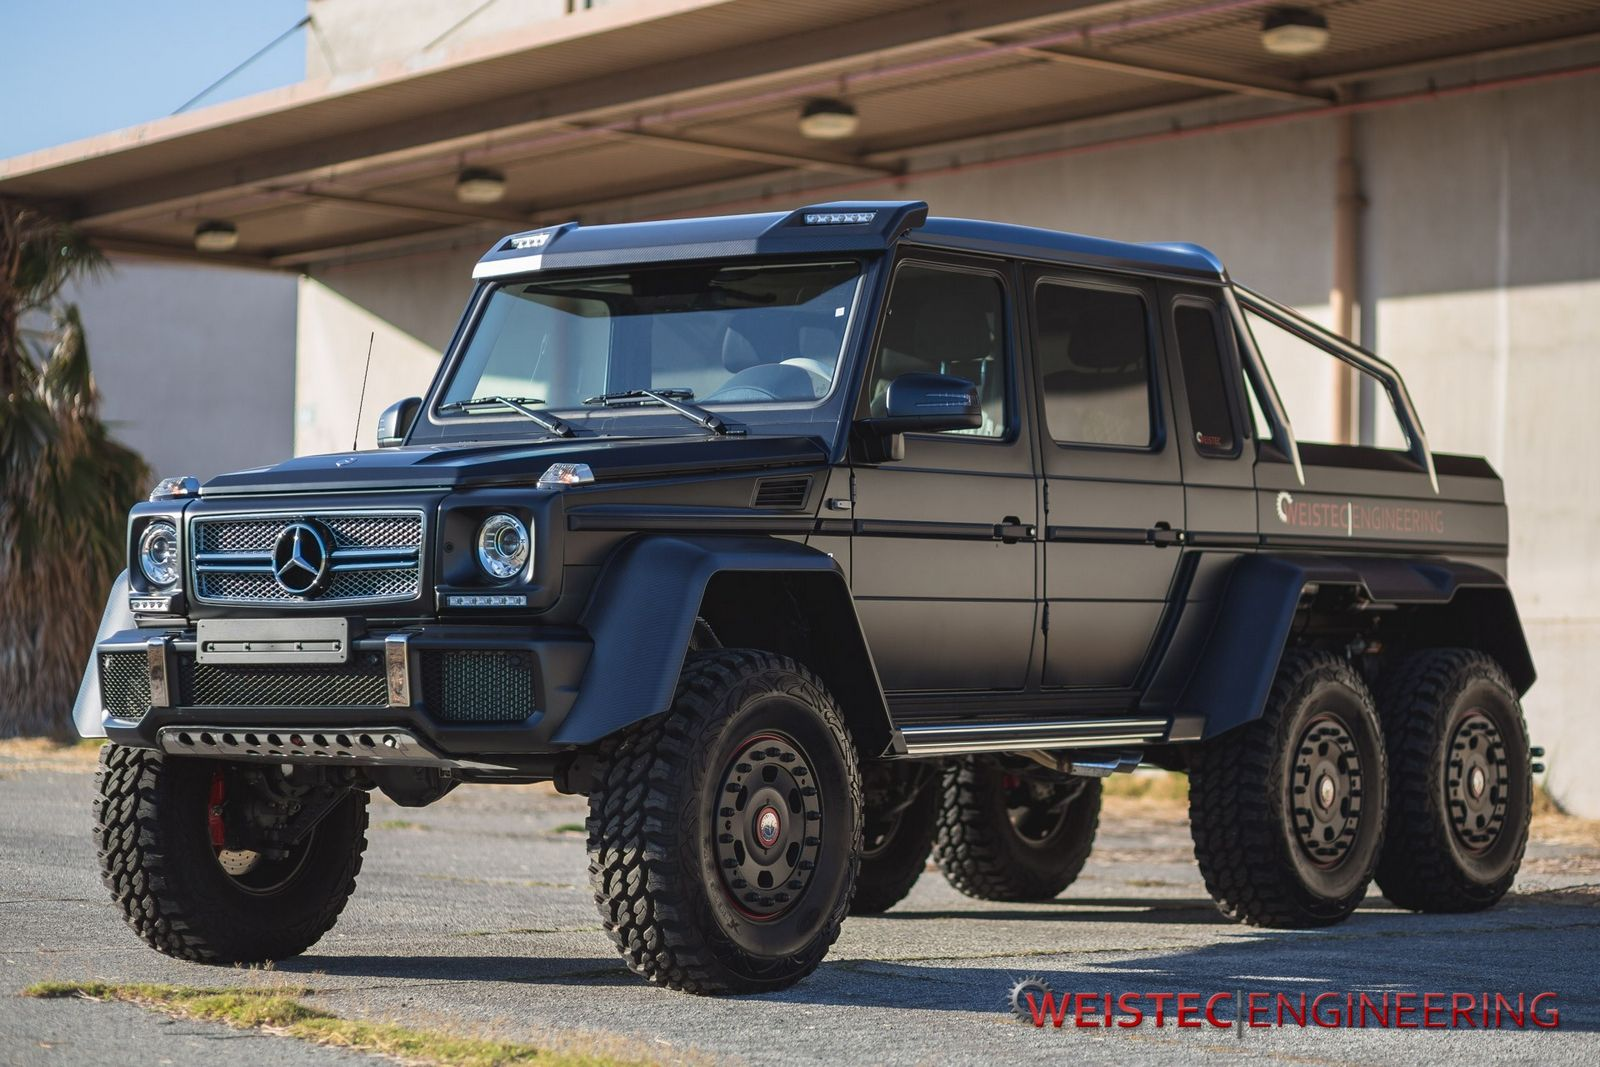 Official MercedesBenz G63 AMG 6x6 by Weistec Engineering  GTspirit